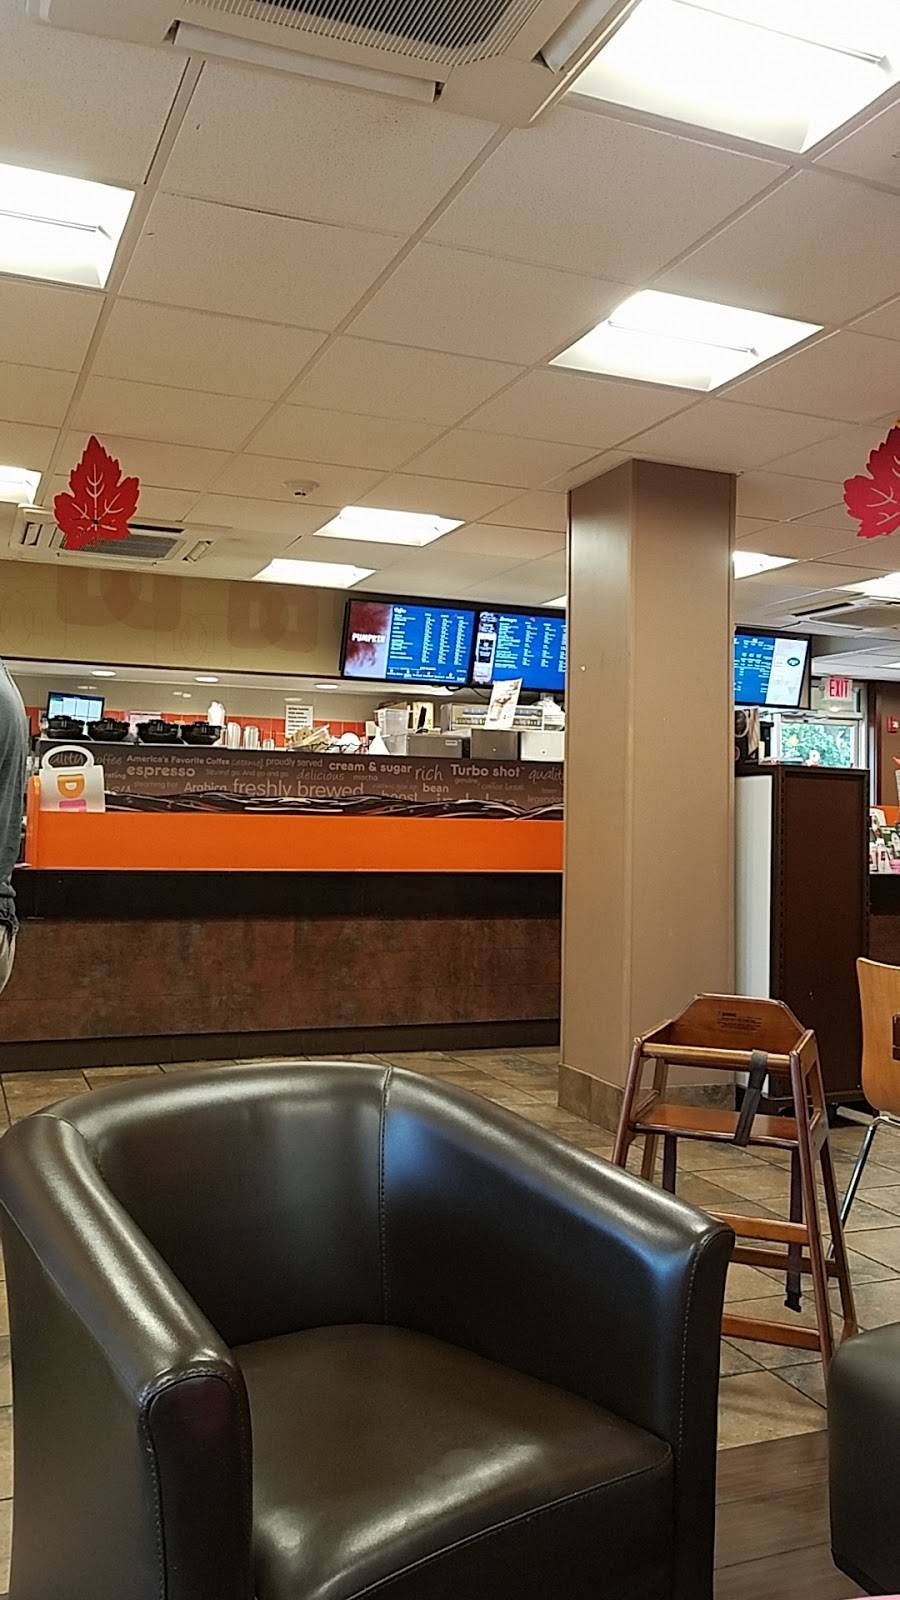 Dunkin Donuts | cafe | 22 Long Ridge Rd, Stamford, CT 06905, USA | 2033230501 OR +1 203-323-0501